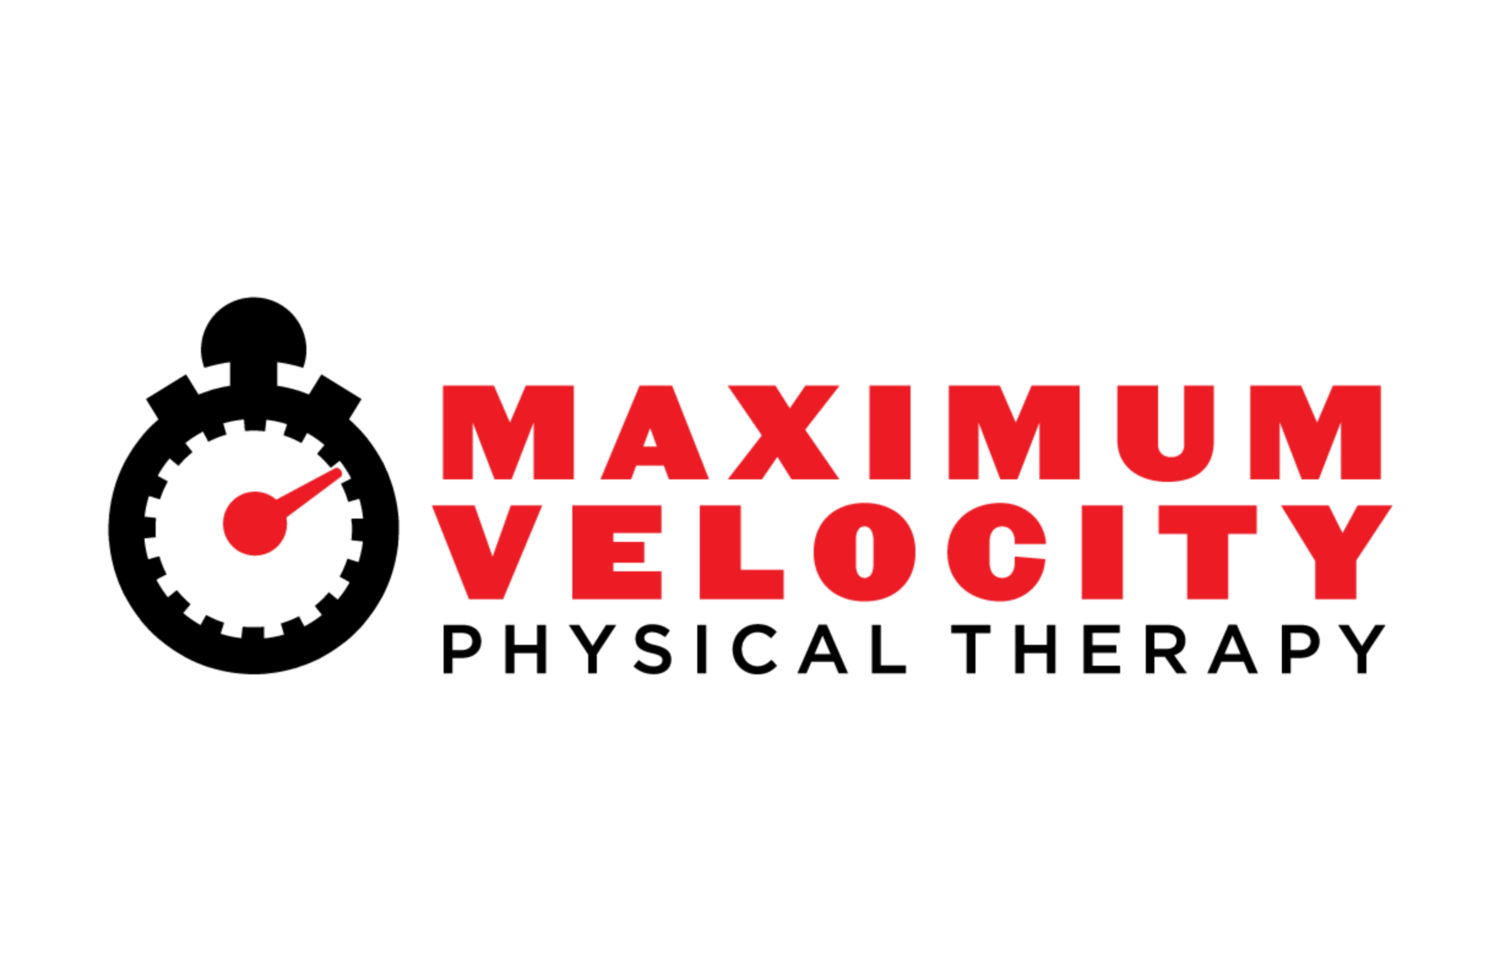 Maximum Velocity Physical Therapy